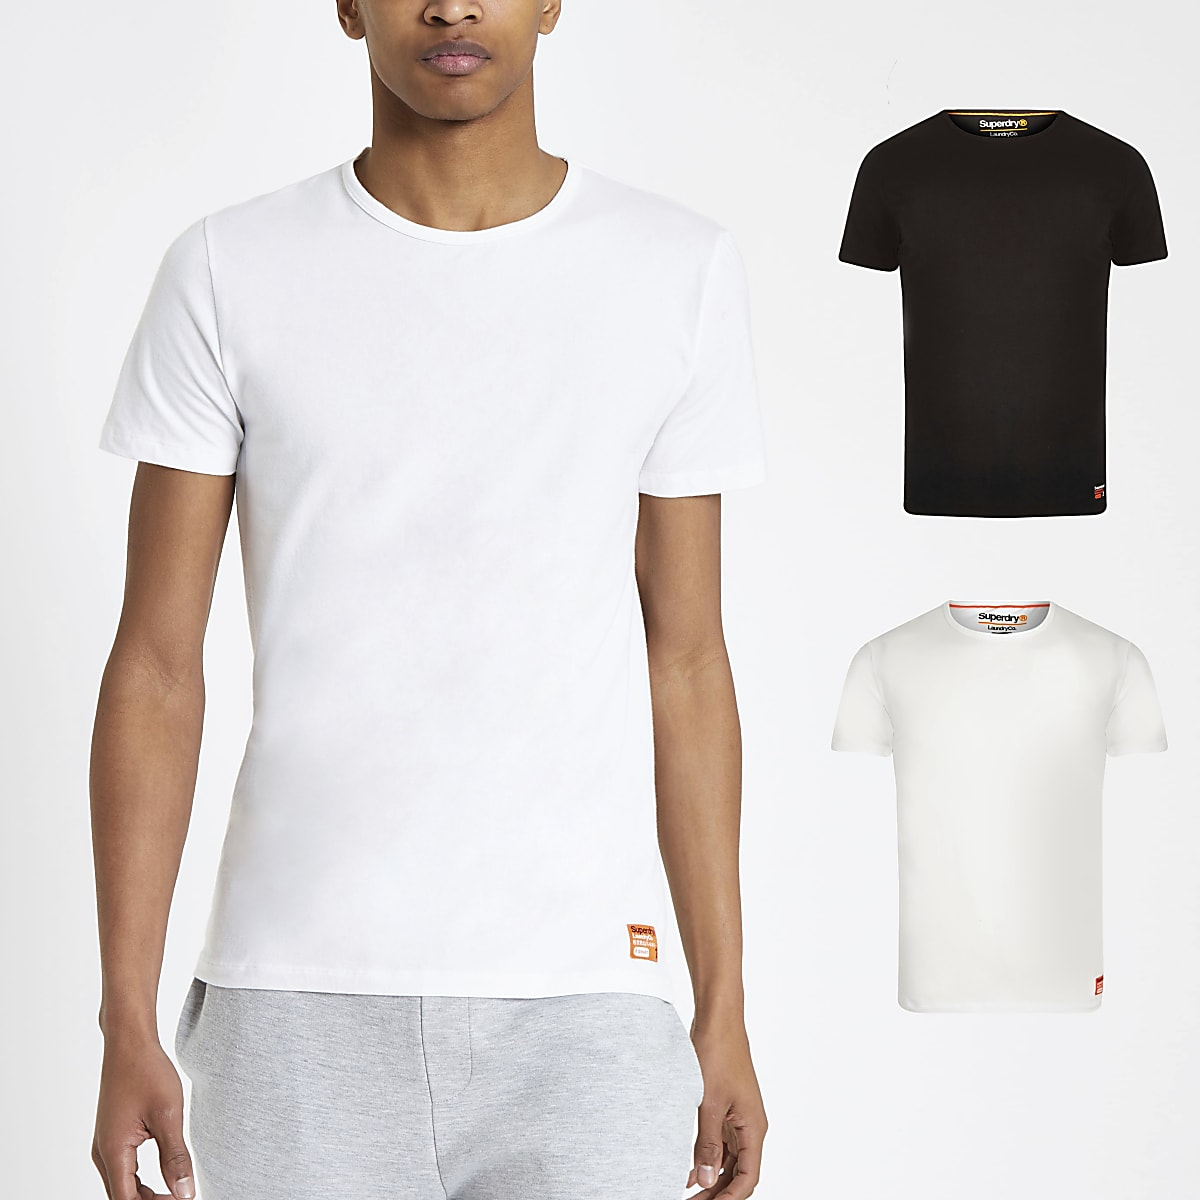 Superdry white slim fit T-shirt 2 pack